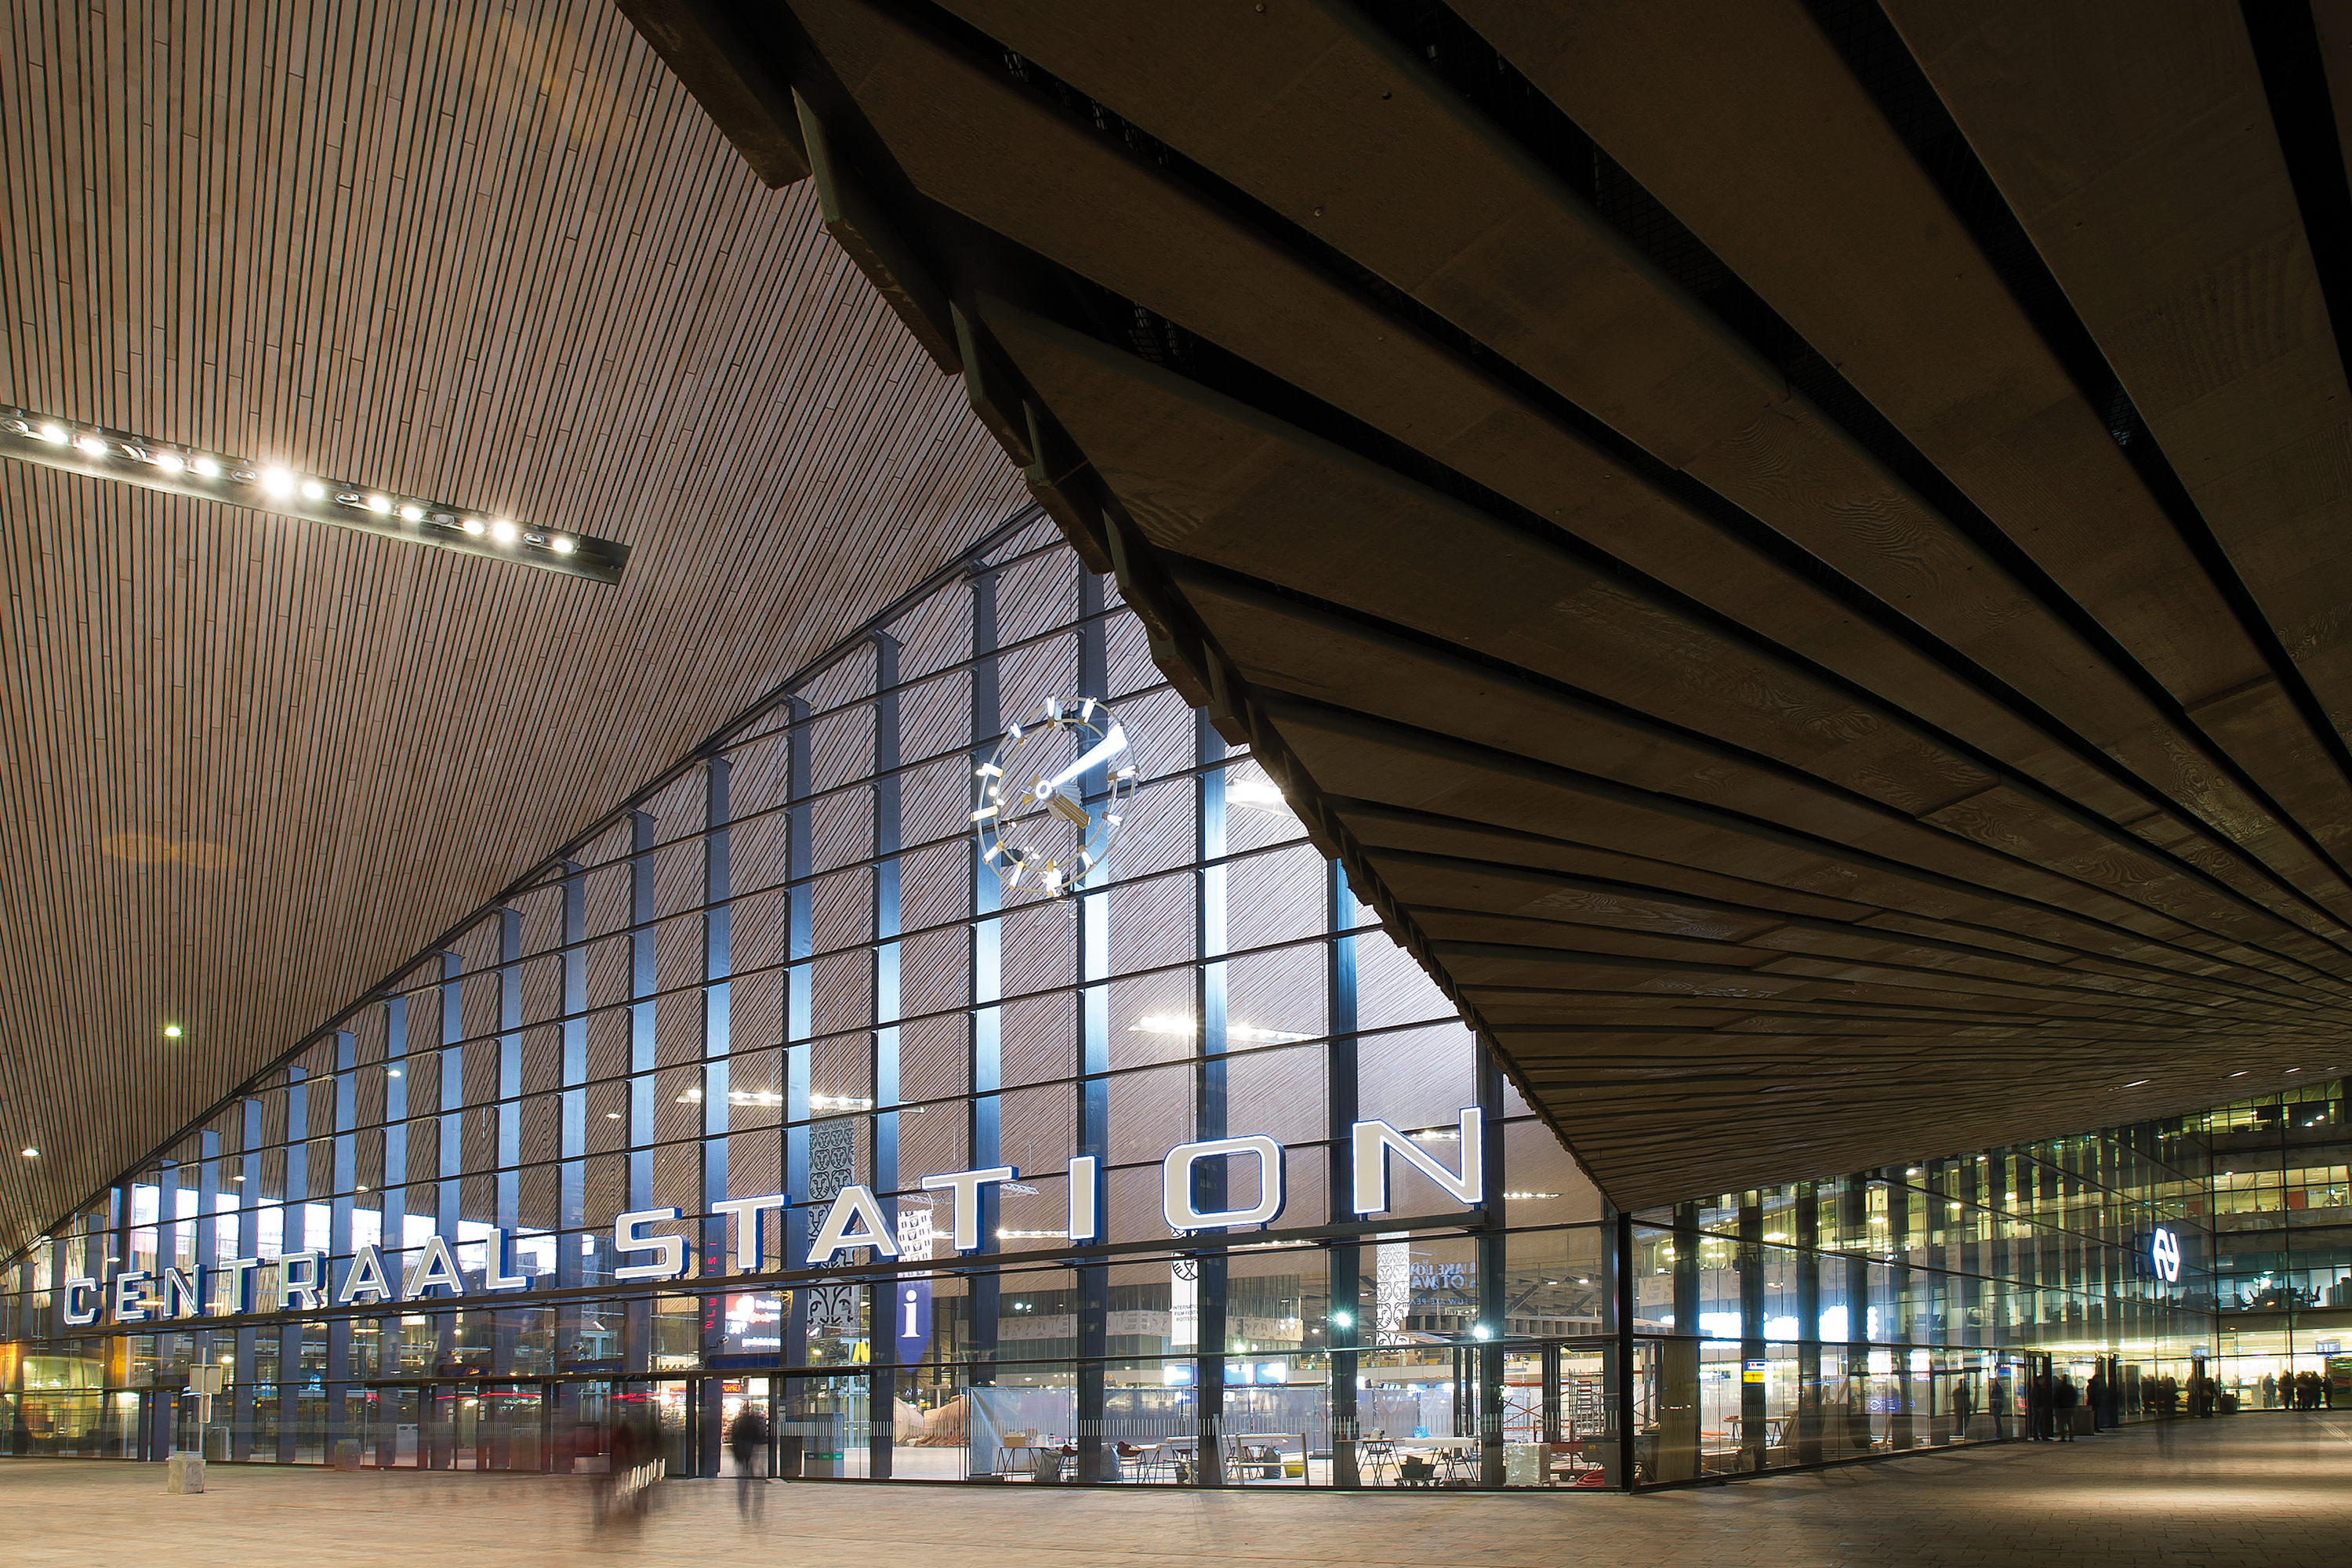 Central Station Rotterdam